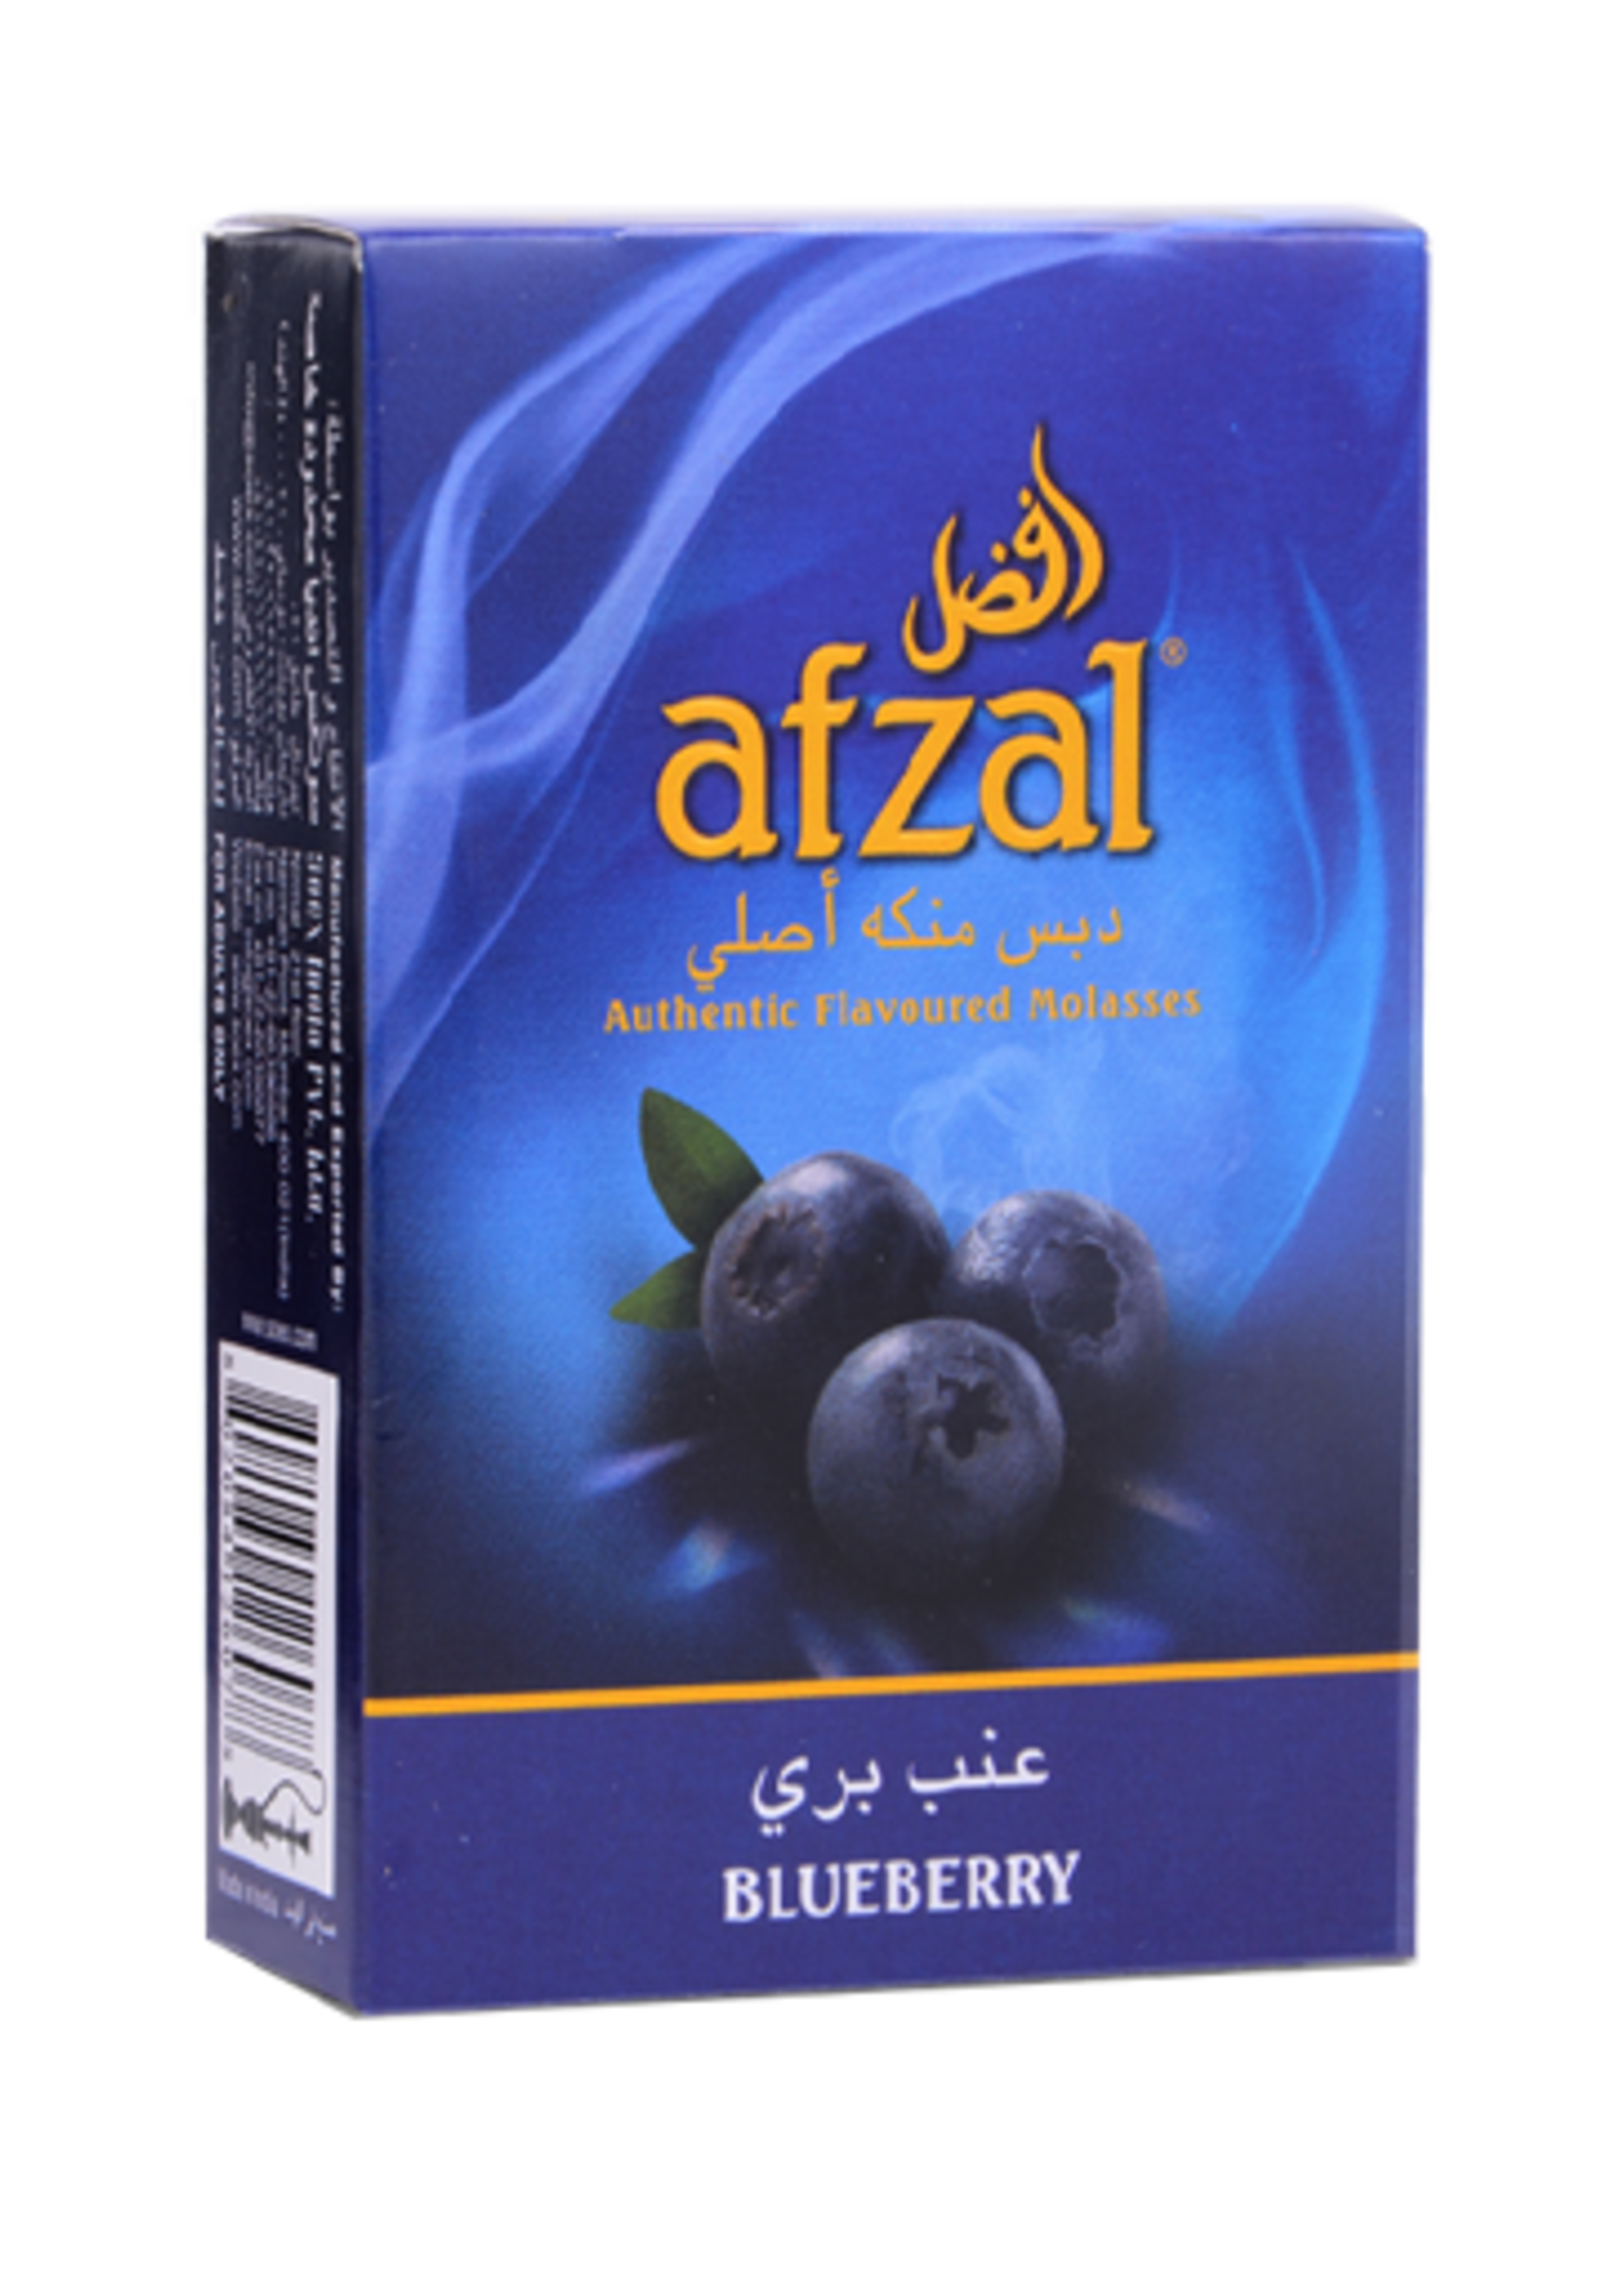 Afzal hubbly flavour - blueberry